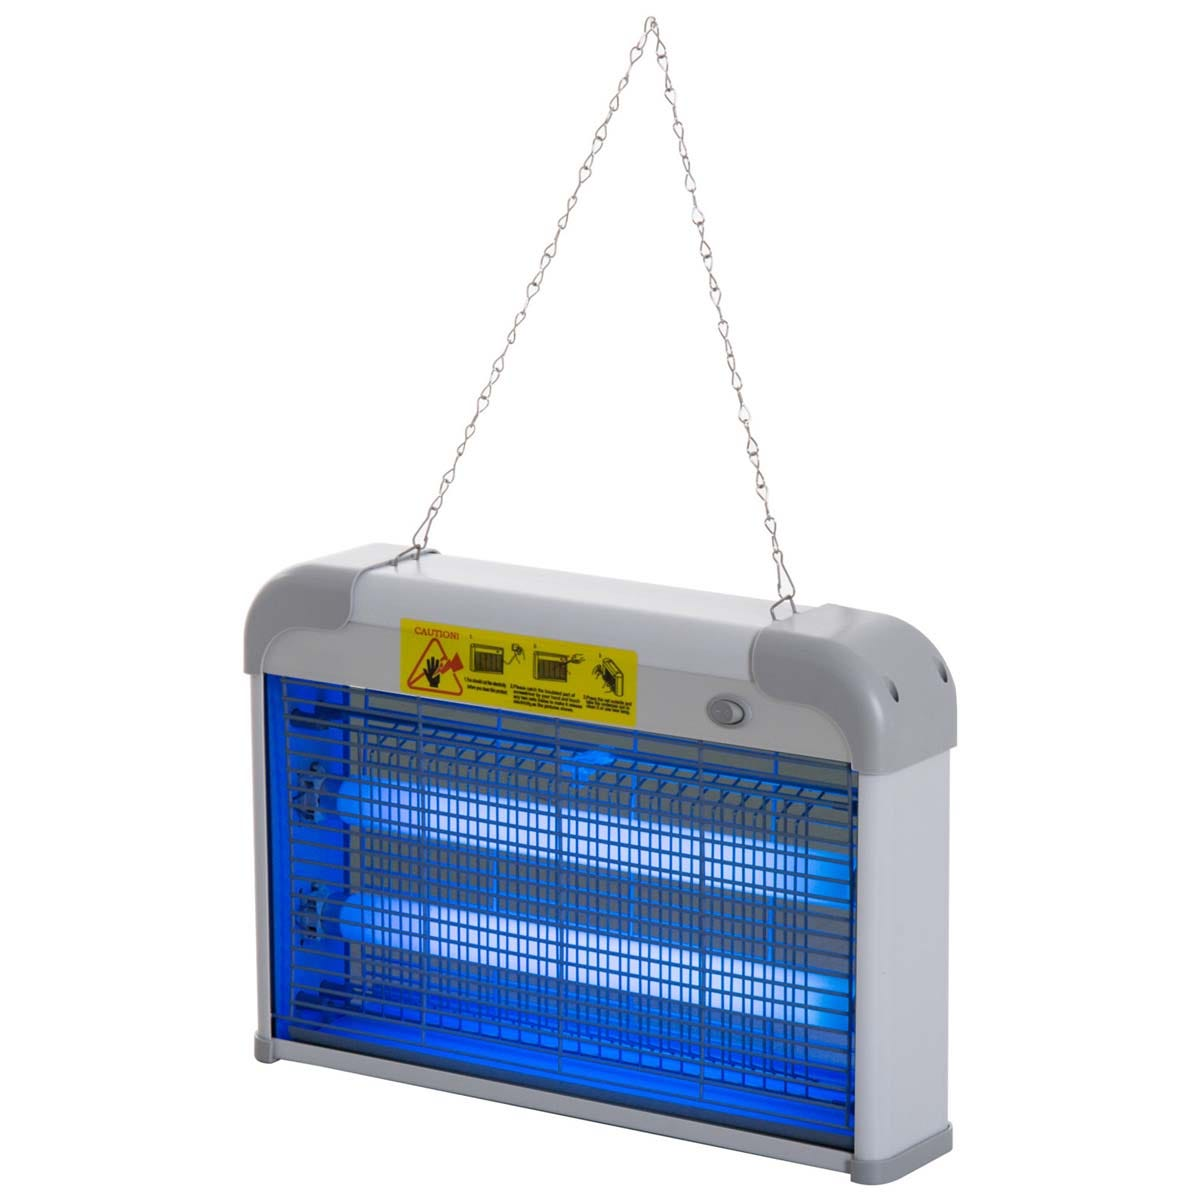 Outsunny Electric LED Mosquito Killer Lamp - Small